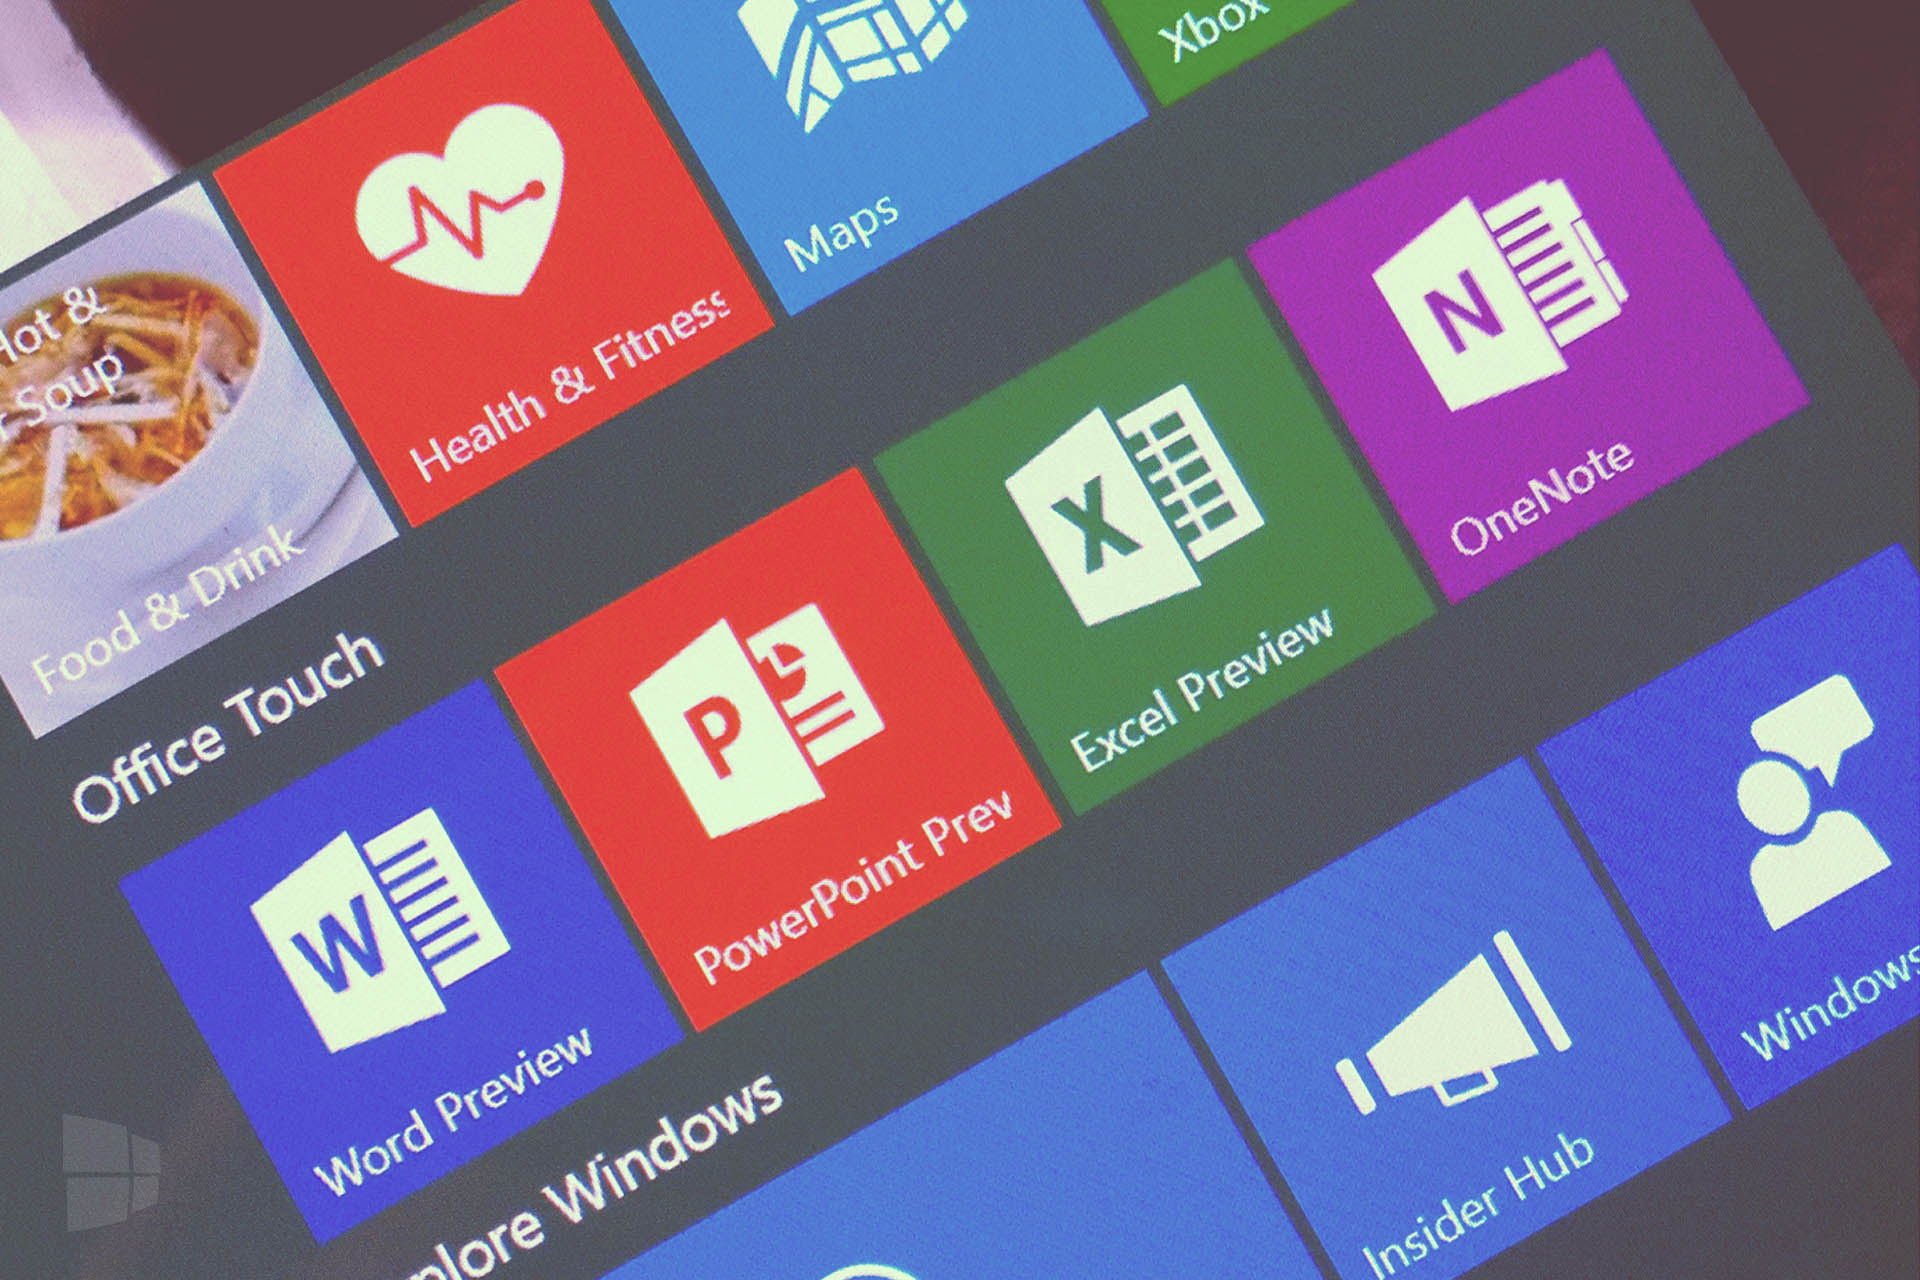 Office Touch app Windows 10